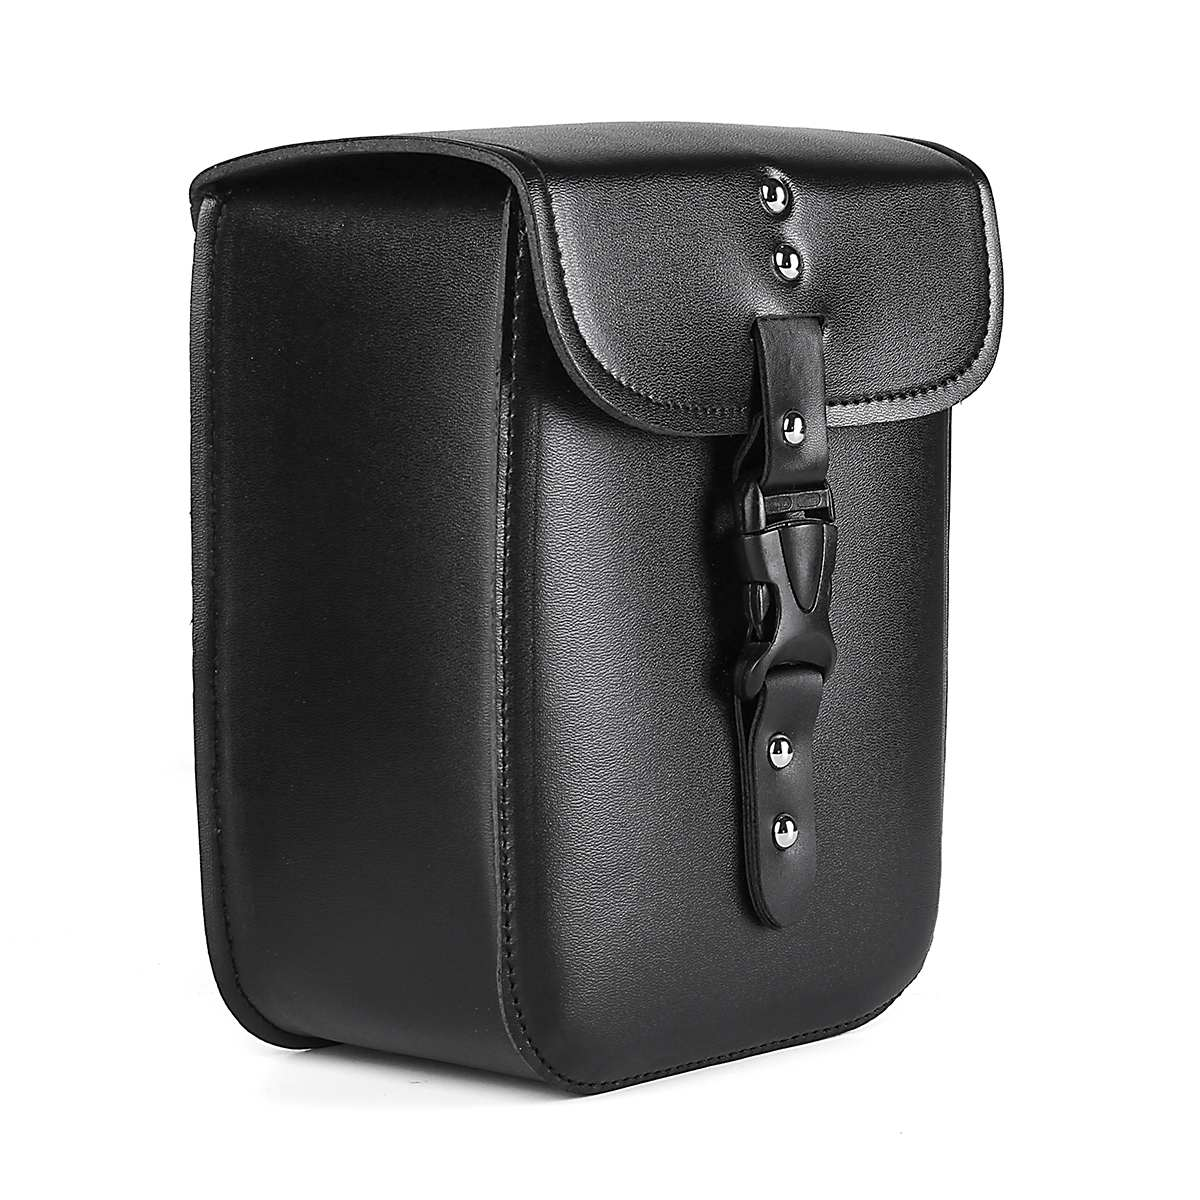 Black PU Leather Motorcycle Tool Saddle Case Bags Side Storage Side Storage Tool Pouches With Mounting Straps